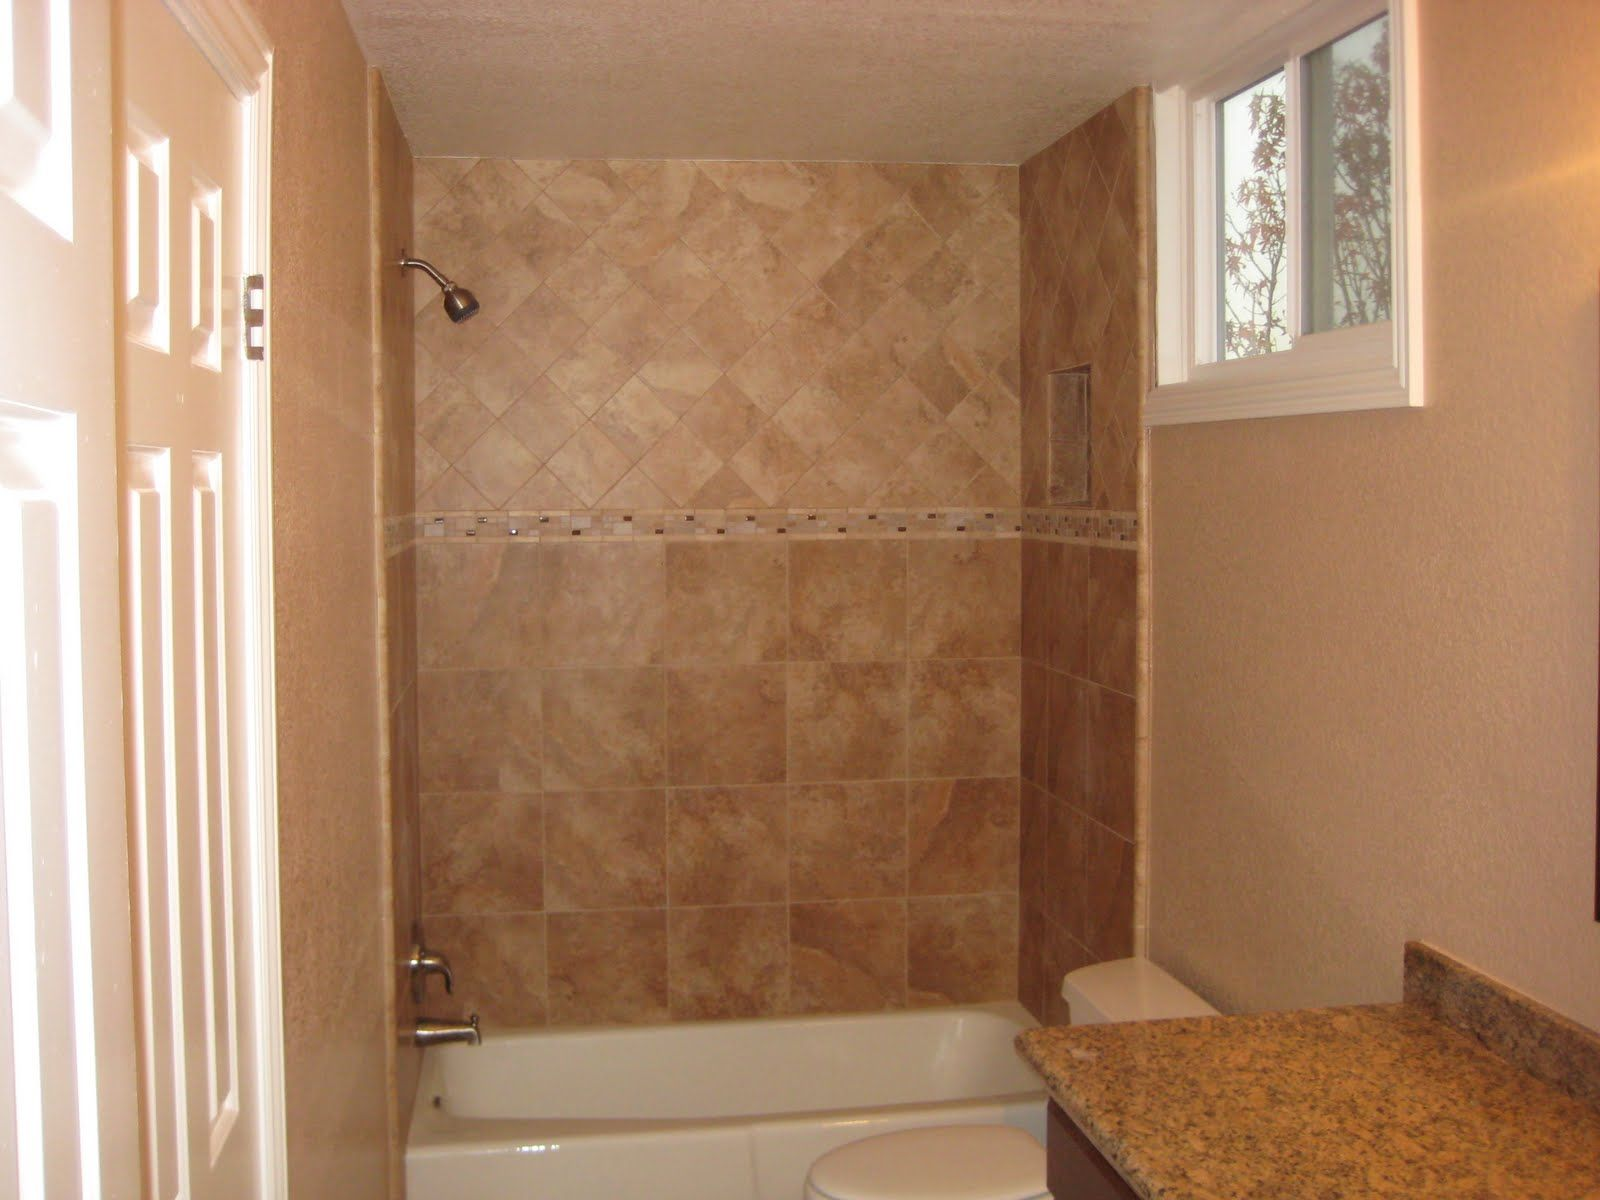 How to build a tiled shower tub - Demo Tile On Floor And Shower Walls New Vanity Tub Wall Tile Granit